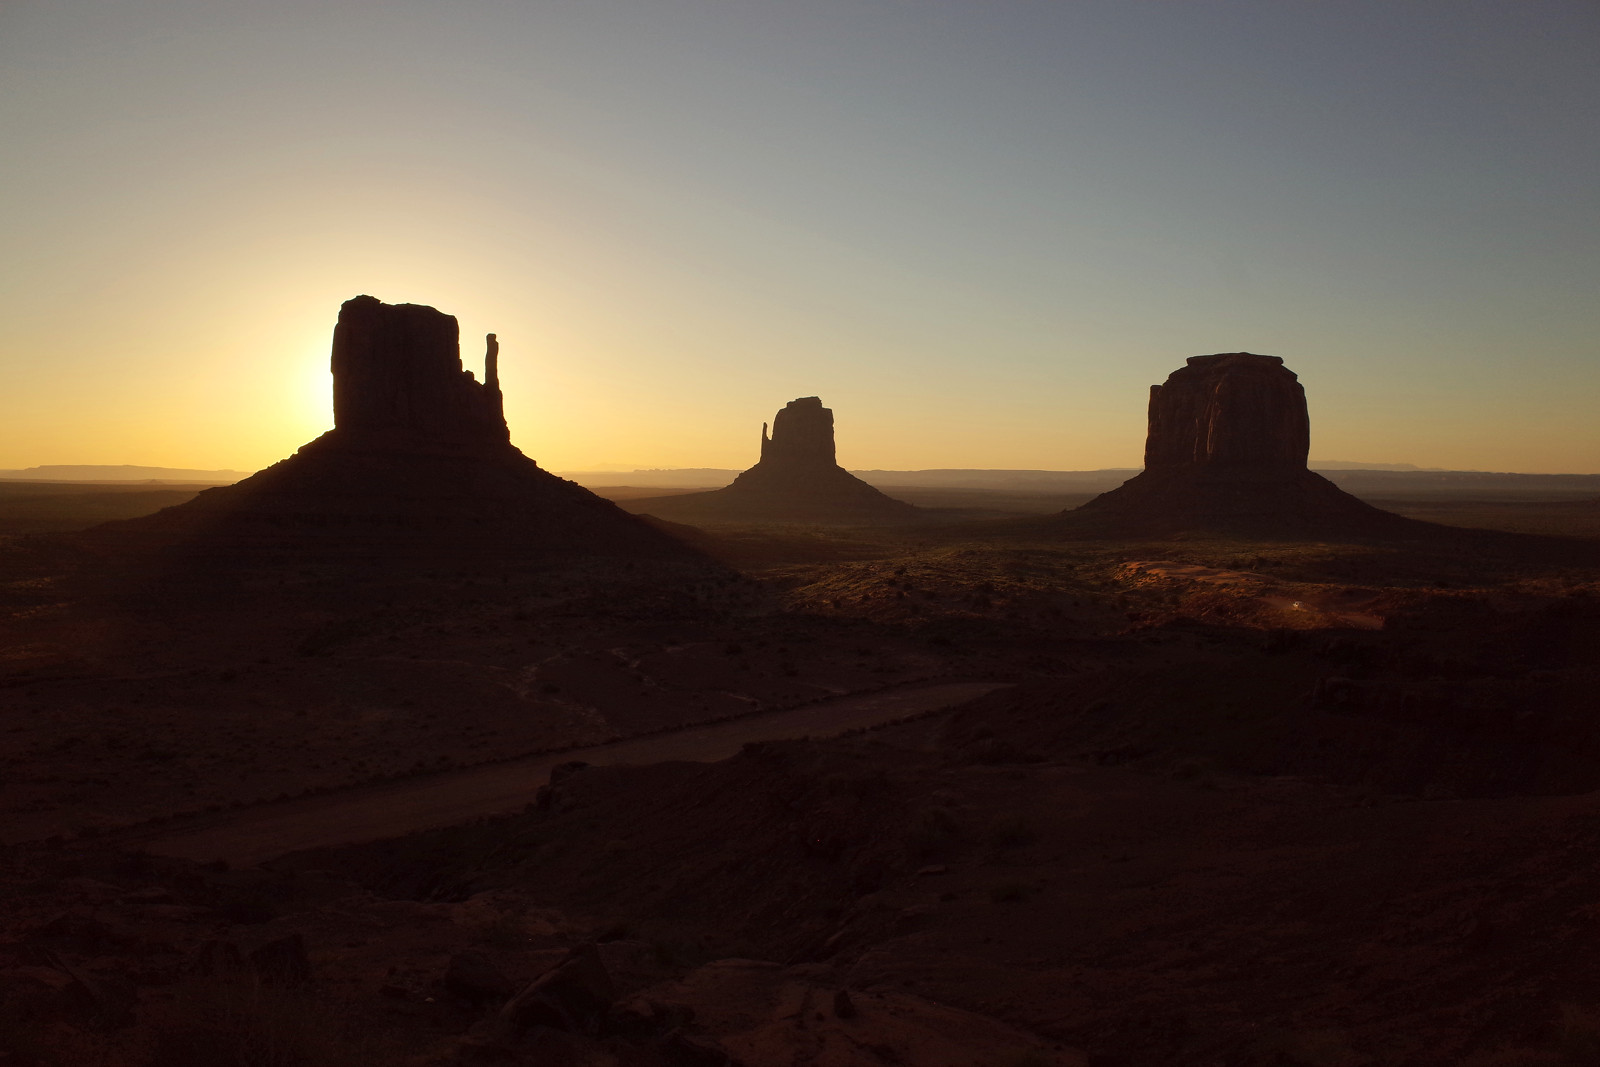 The Mittens of Monument Valley at sunrise